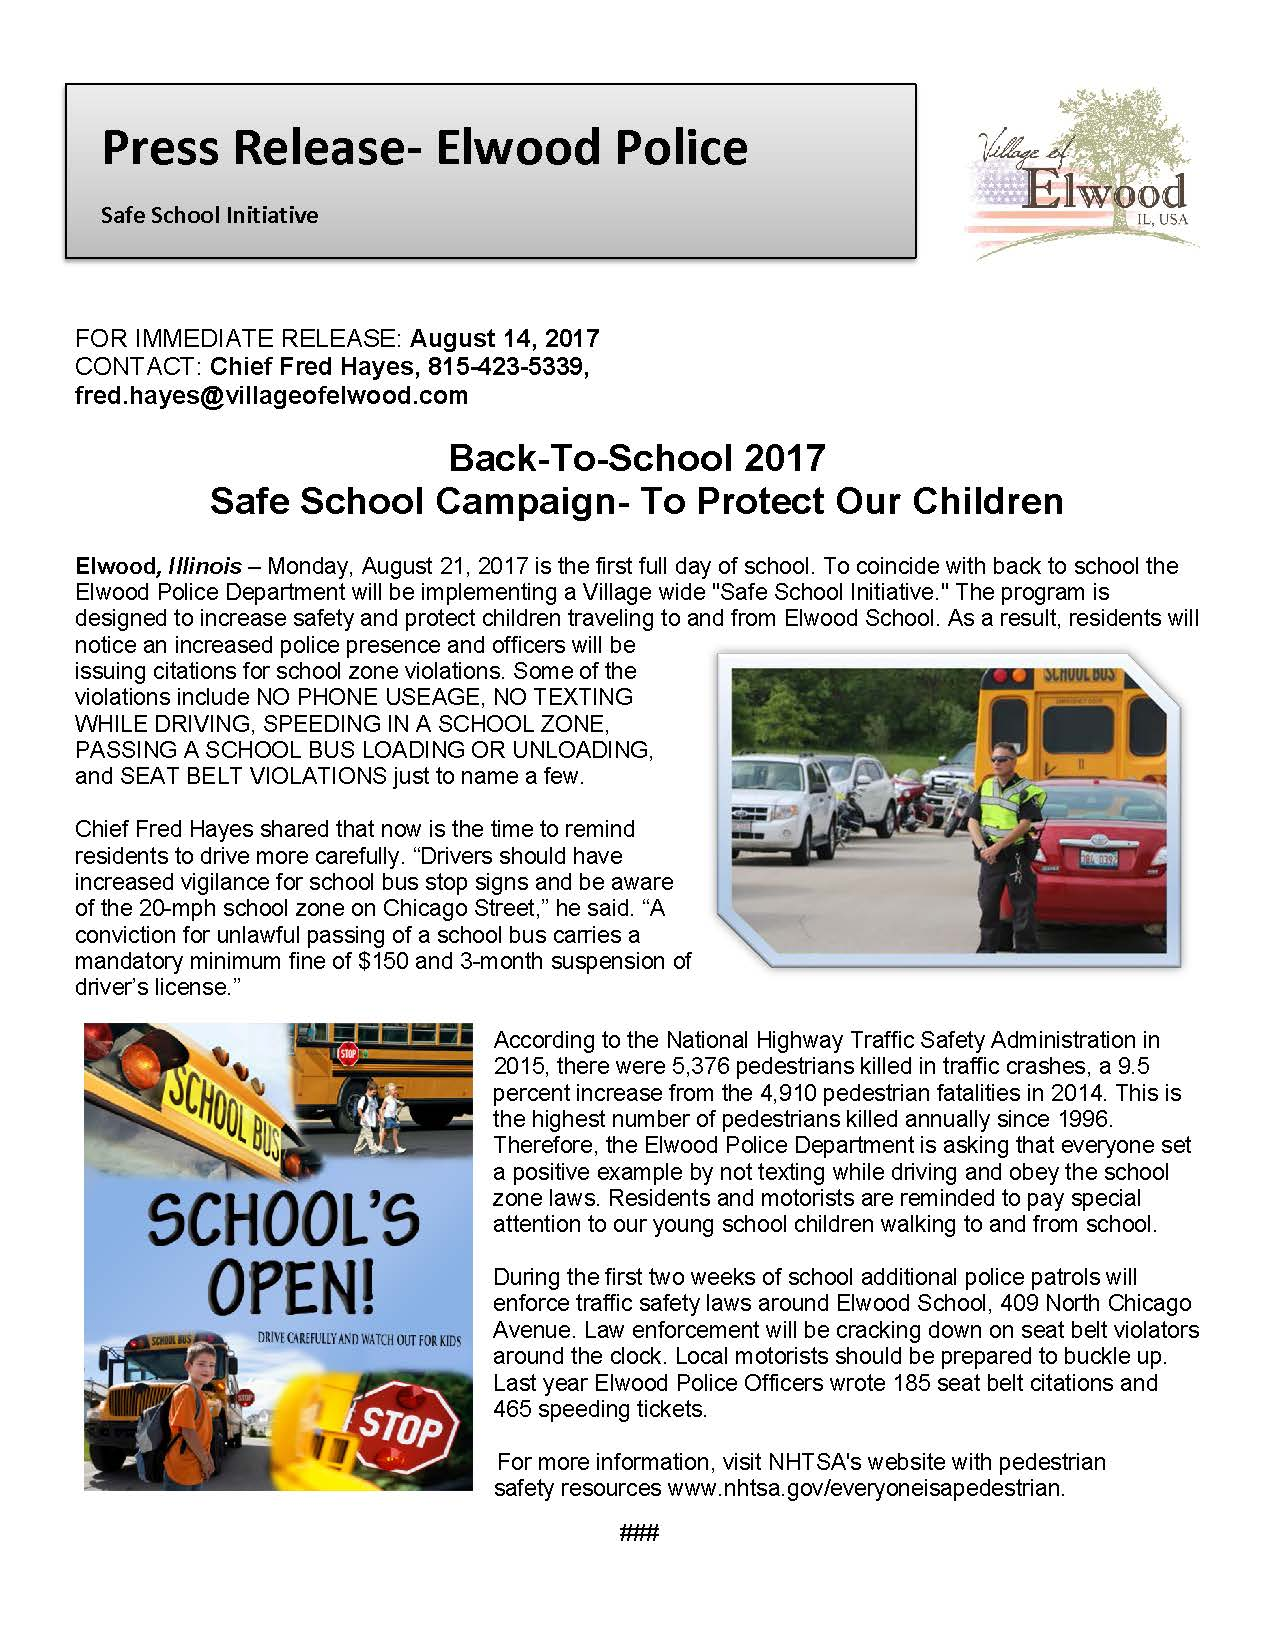 Press Release Back To School Traffic Safety Initative 2017